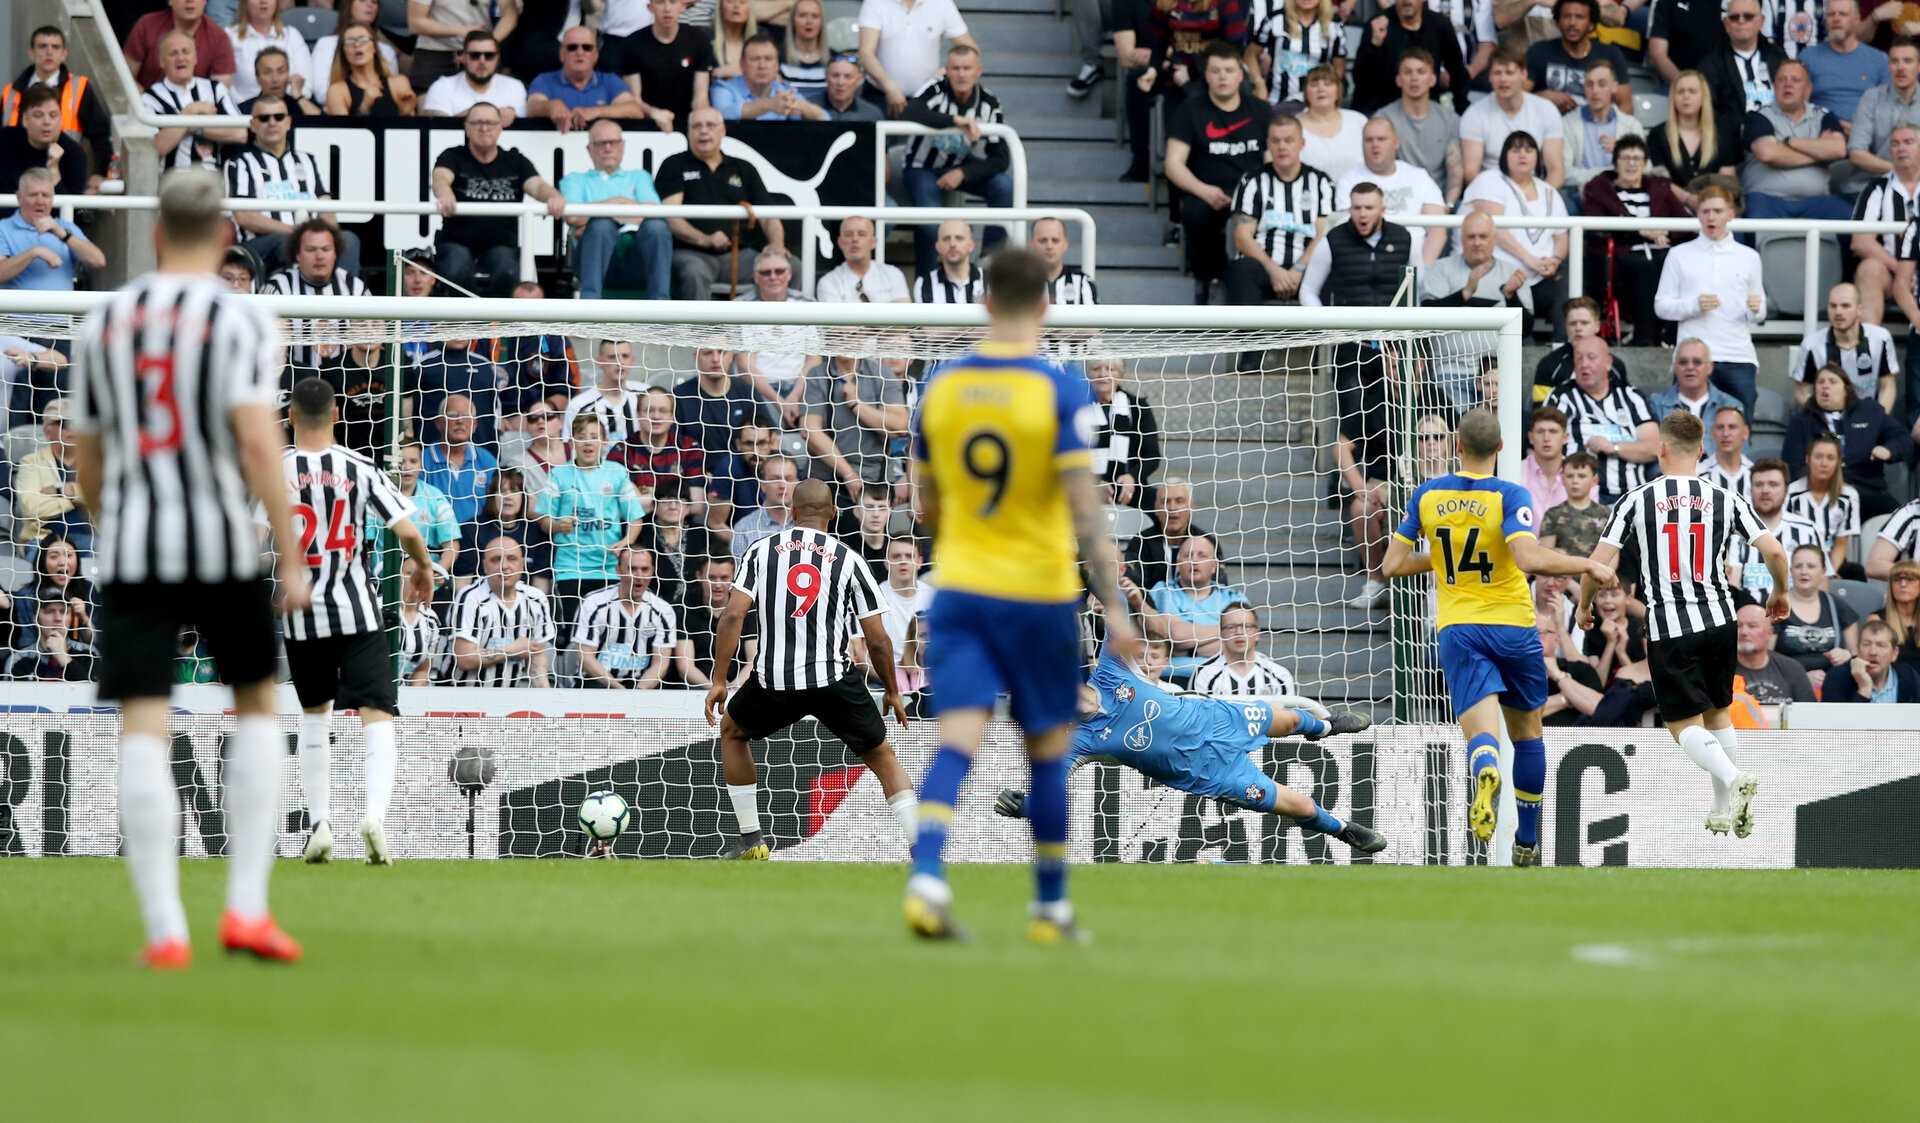 NEWCASTLE UPON TYNE, ENGLAND - APRIL 20: Newcastle open the scoring during the Premier League match between Newcastle United and Southampton FC at St. James Park on April 20, 2019 in Newcastle upon Tyne, United Kingdom. (Photo by Matt Watson/Southampton FC via Getty Images)